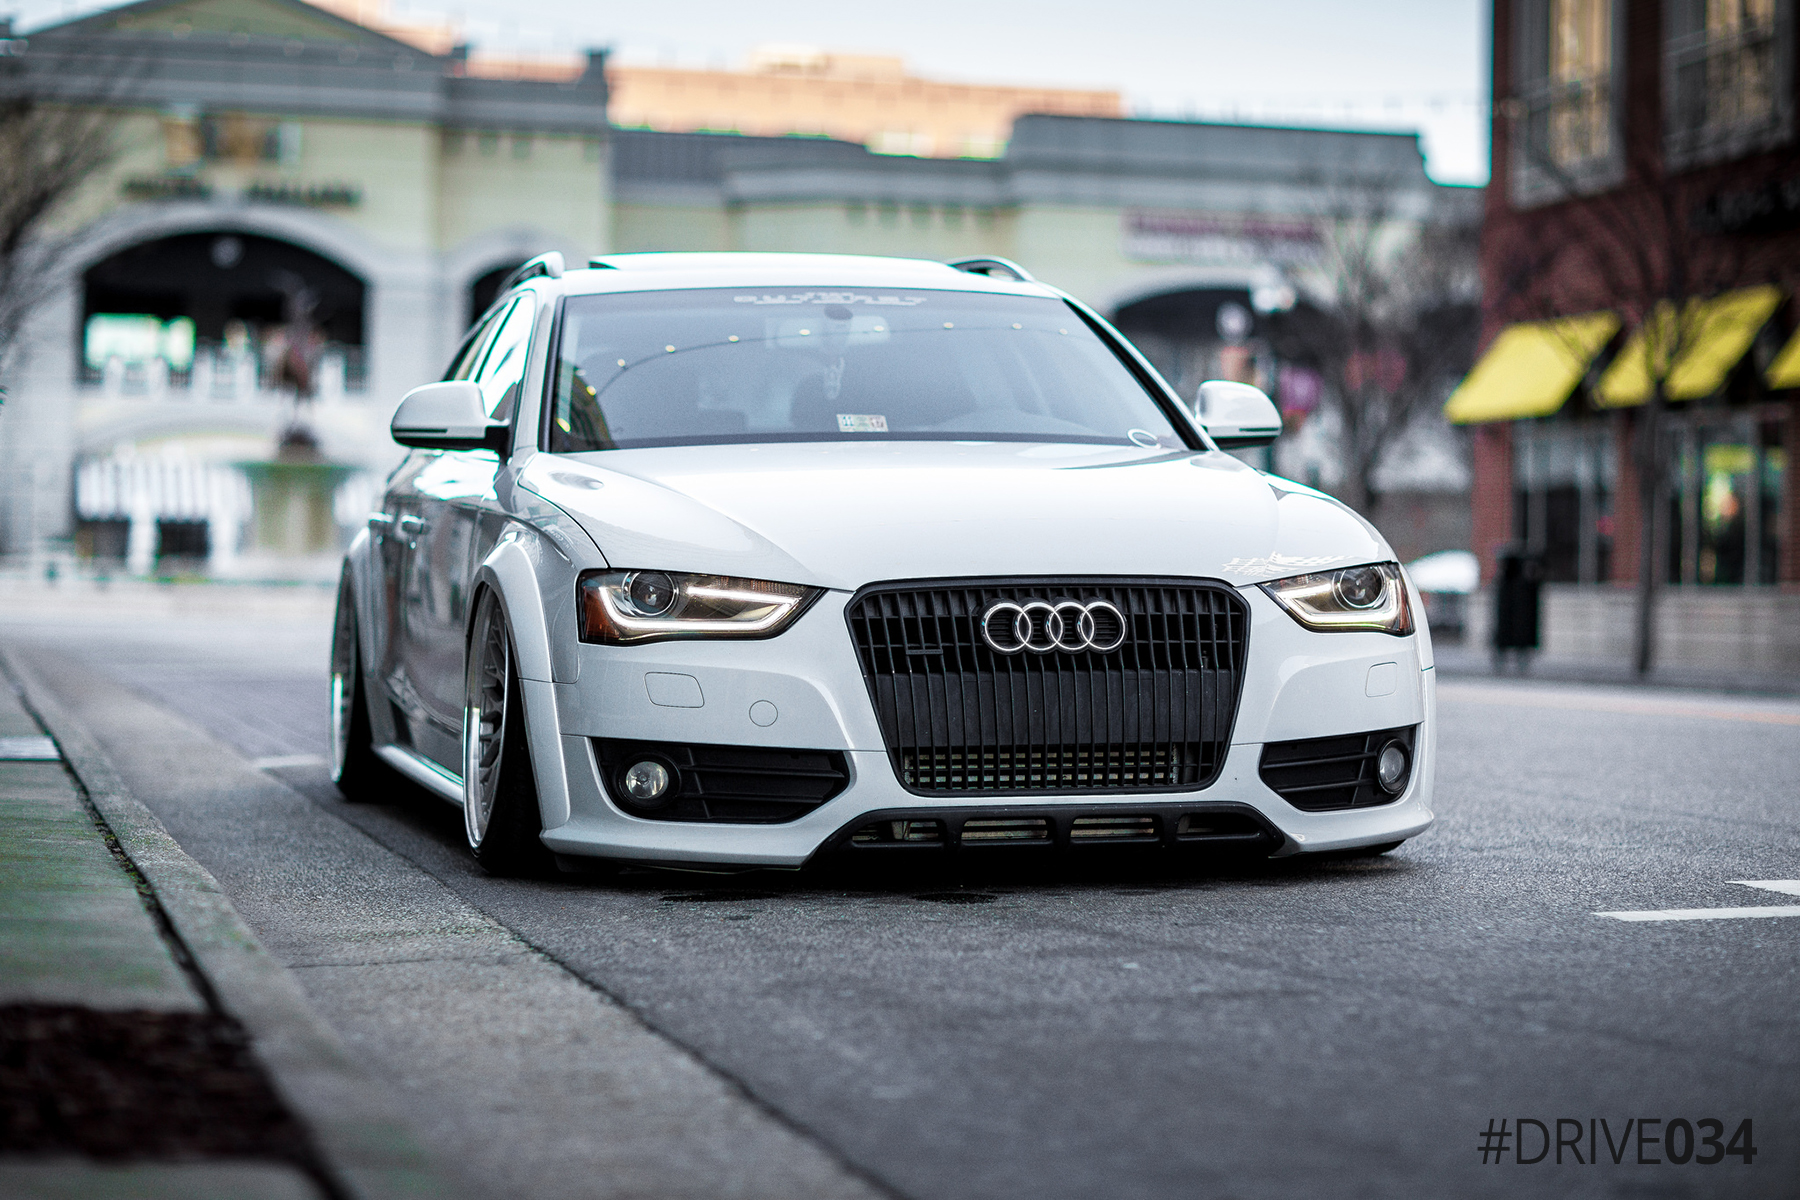 Bagged B8.5 Audi Allroad with Drivetrain Upgrades